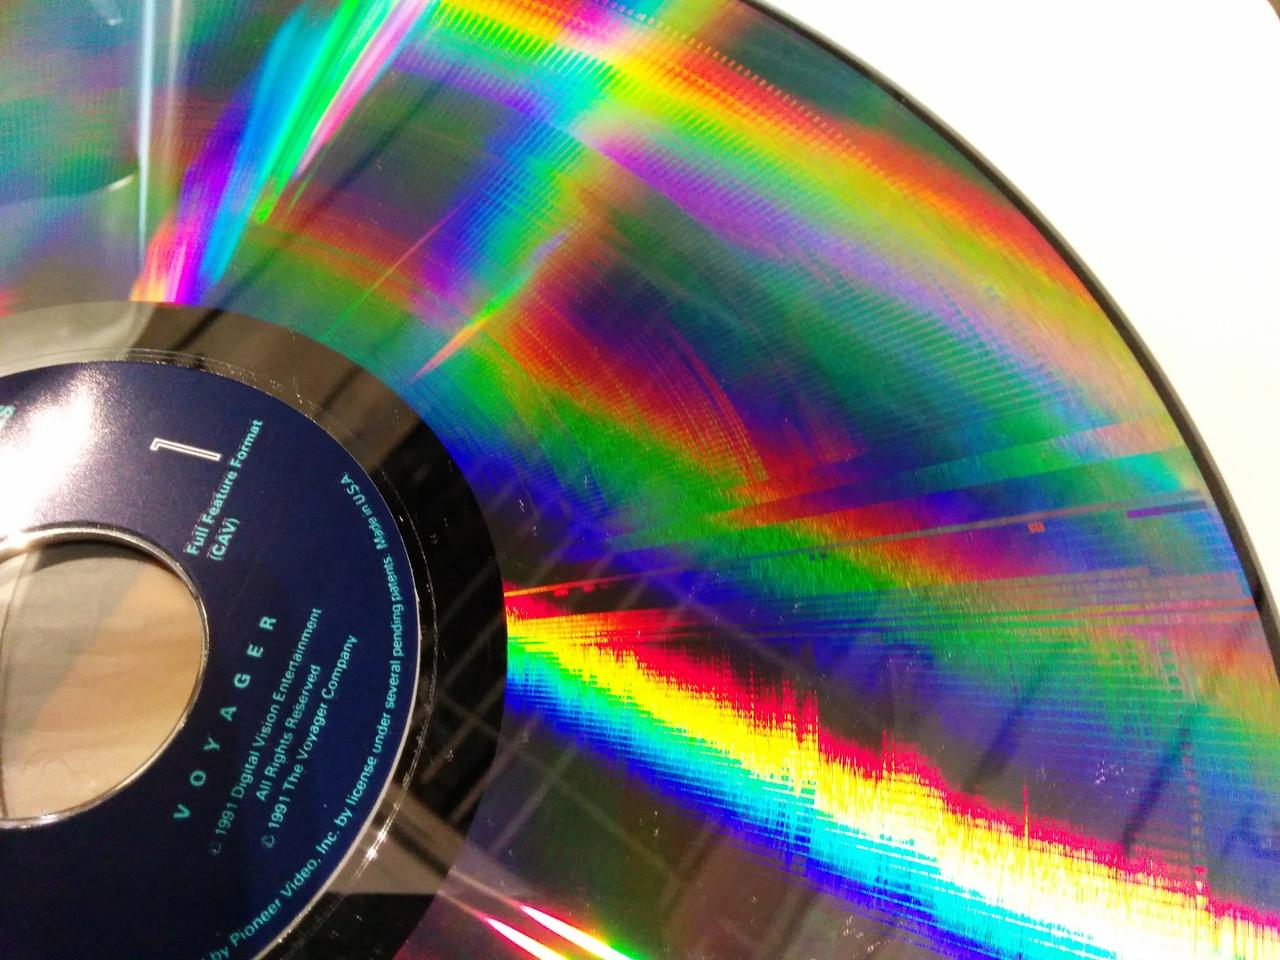 For over 20 years the Laserdisc carved a solid niche in the home entertainment market embraced by cinephiles and setting the precedent for the special feature wave for DVD and Blu-Ray